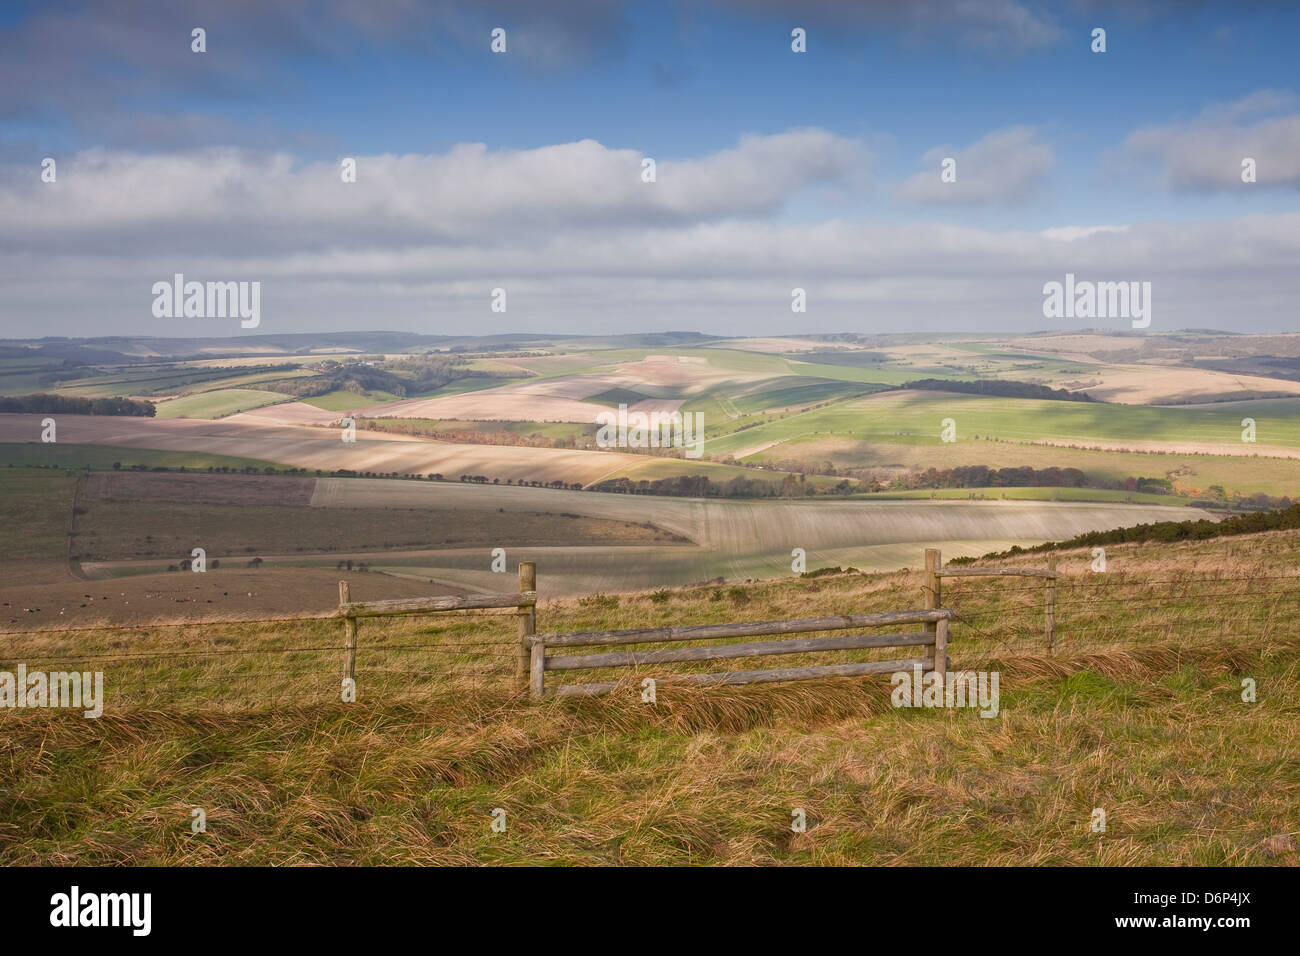 The rolling hills of the South Downs National Park near Brighton, Sussex, England, United Kingdom, Europe - Stock Image